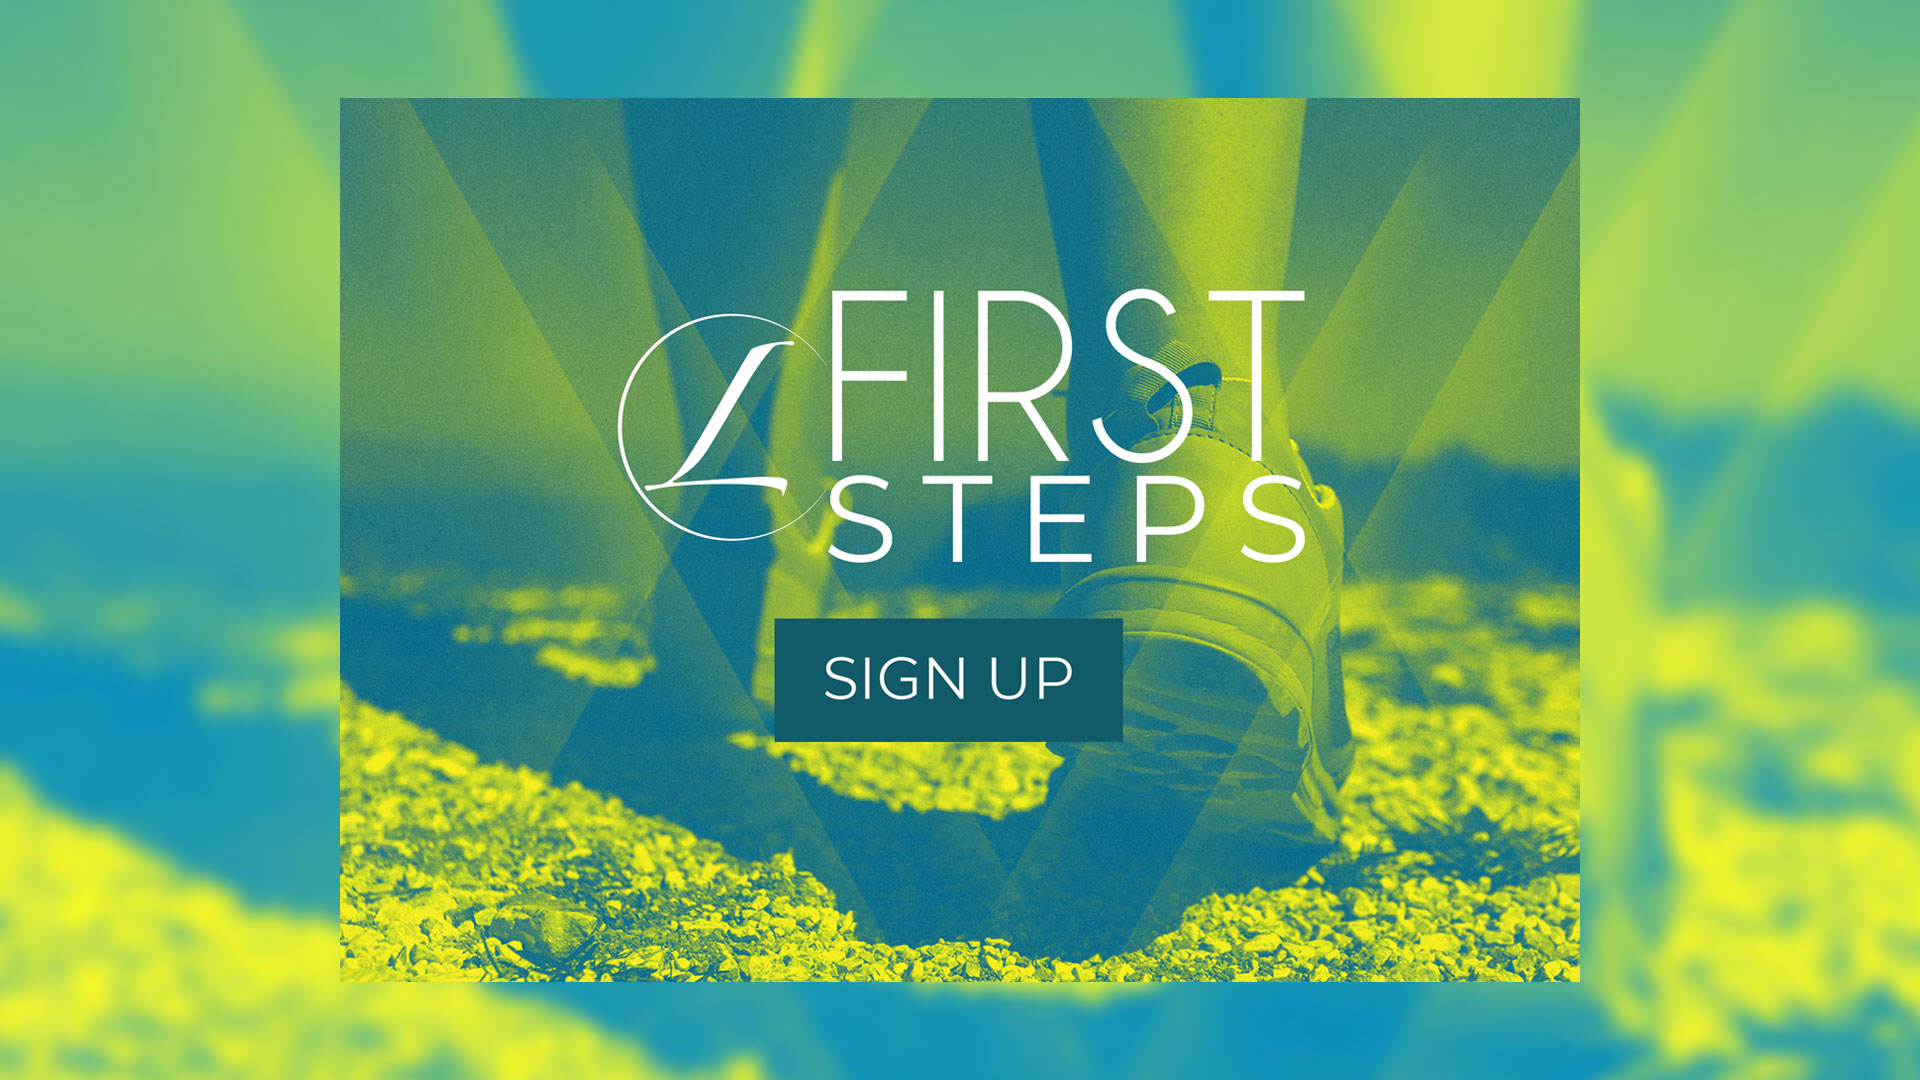 First Steps Signup photo